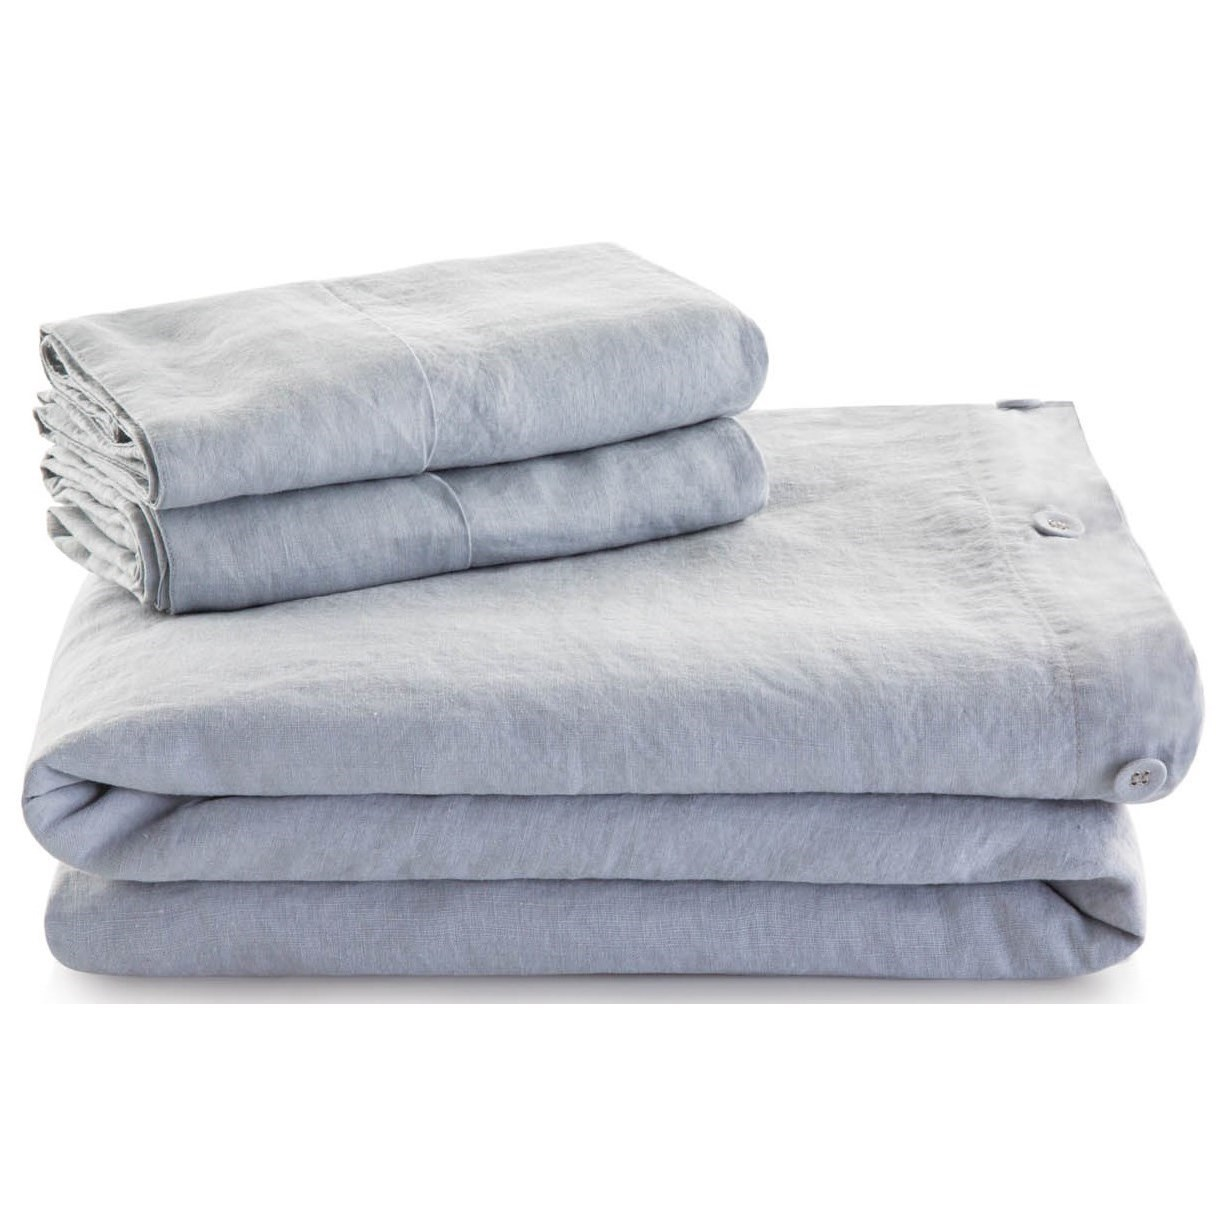 French Linen Queen 100% French Linen Duvet Set by Malouf at Northeast Factory Direct